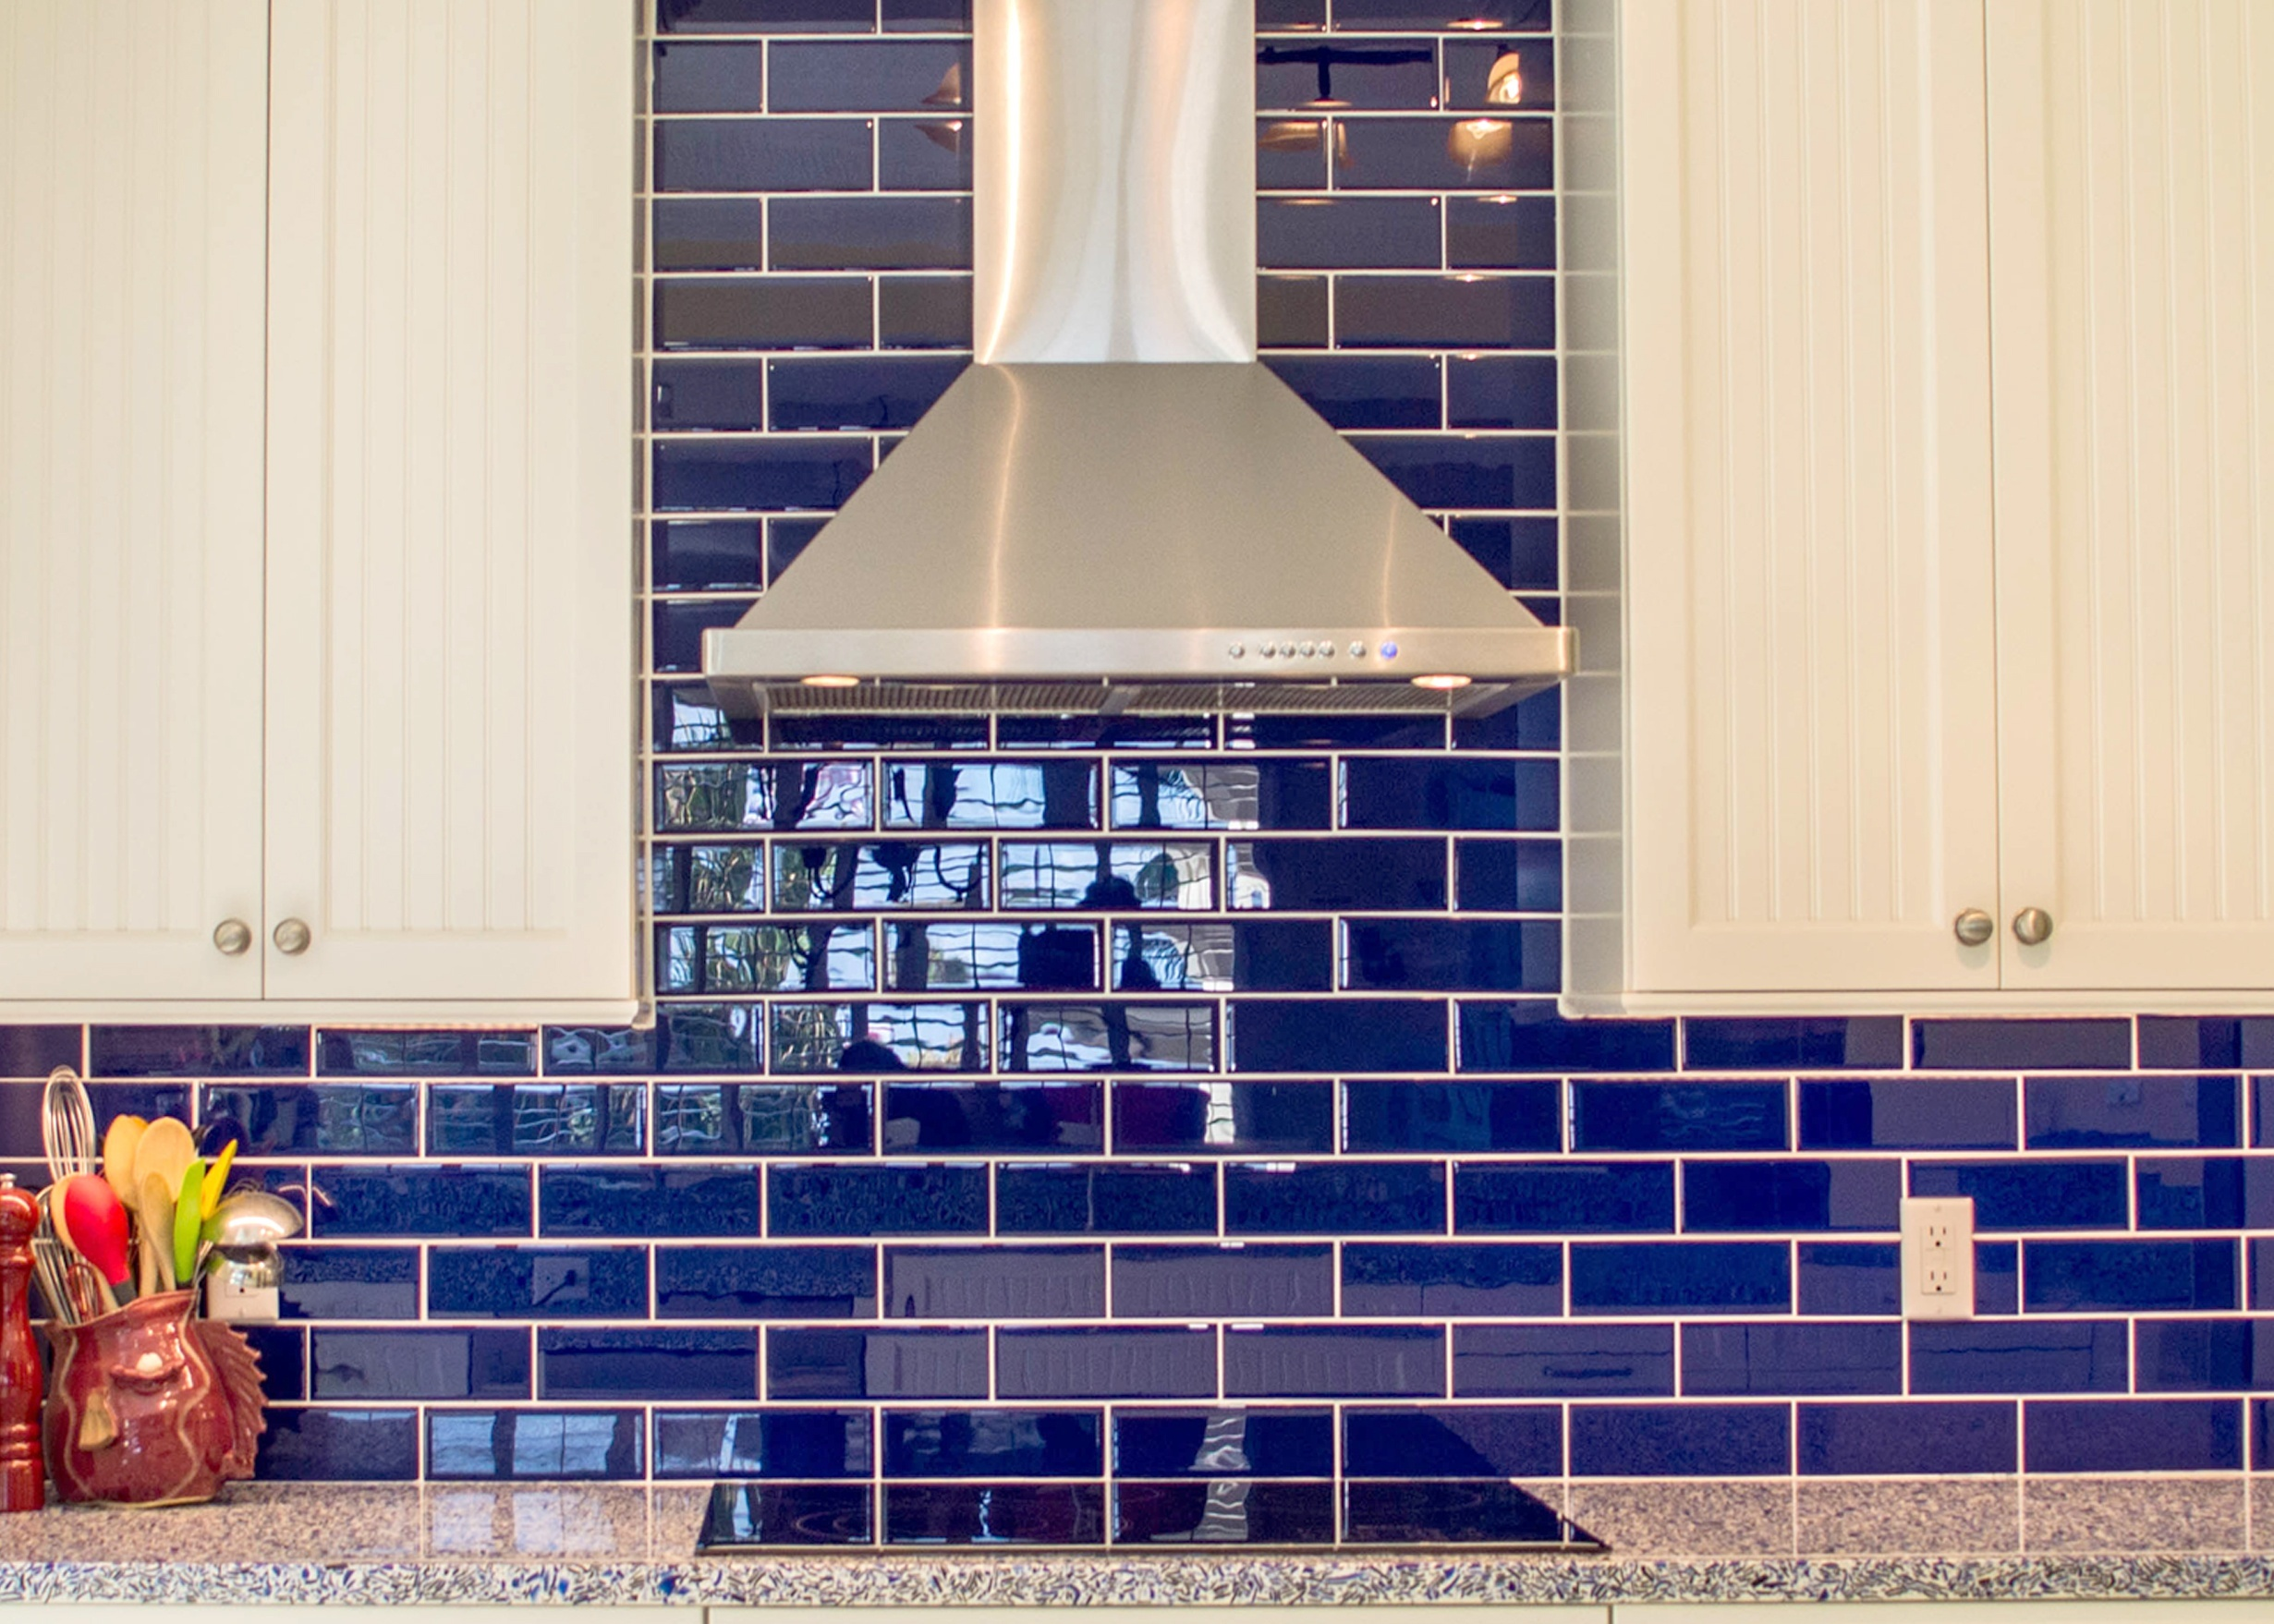 featured_5vetrazzo-recycled-glass-in-cobalt-skye-for-countertops-and-creative-kitchen-storage-by-waterview-kitchens-close-up-of-cobalt-tile